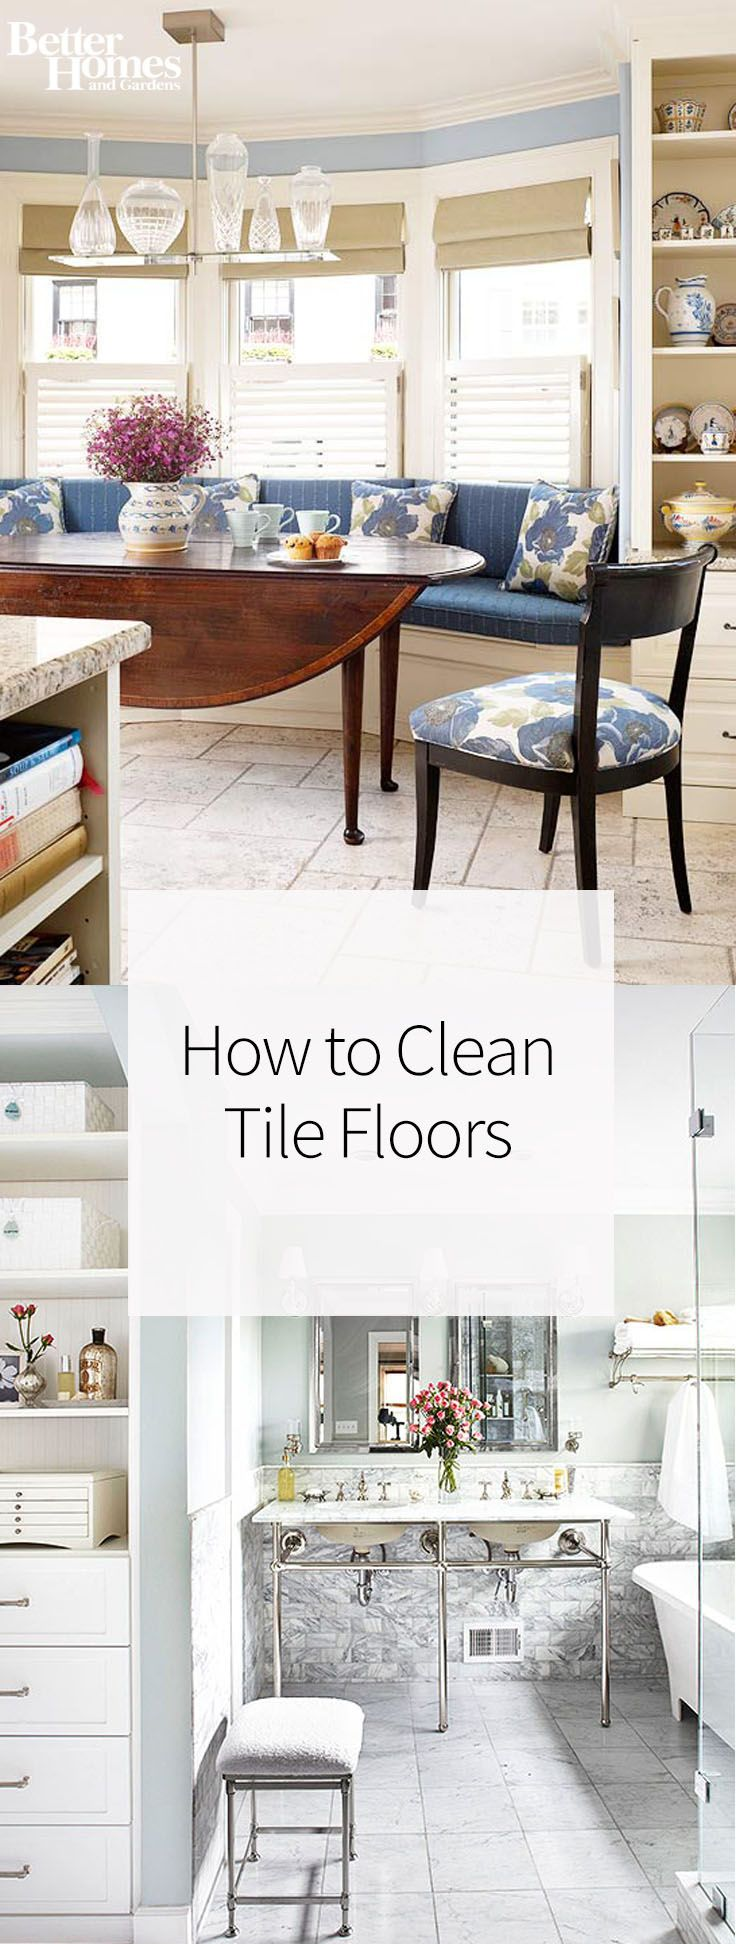 How to clean tile floors remove stains tile flooring and grout were sharing the best way to clean tile floors whether youre working dailygadgetfo Images